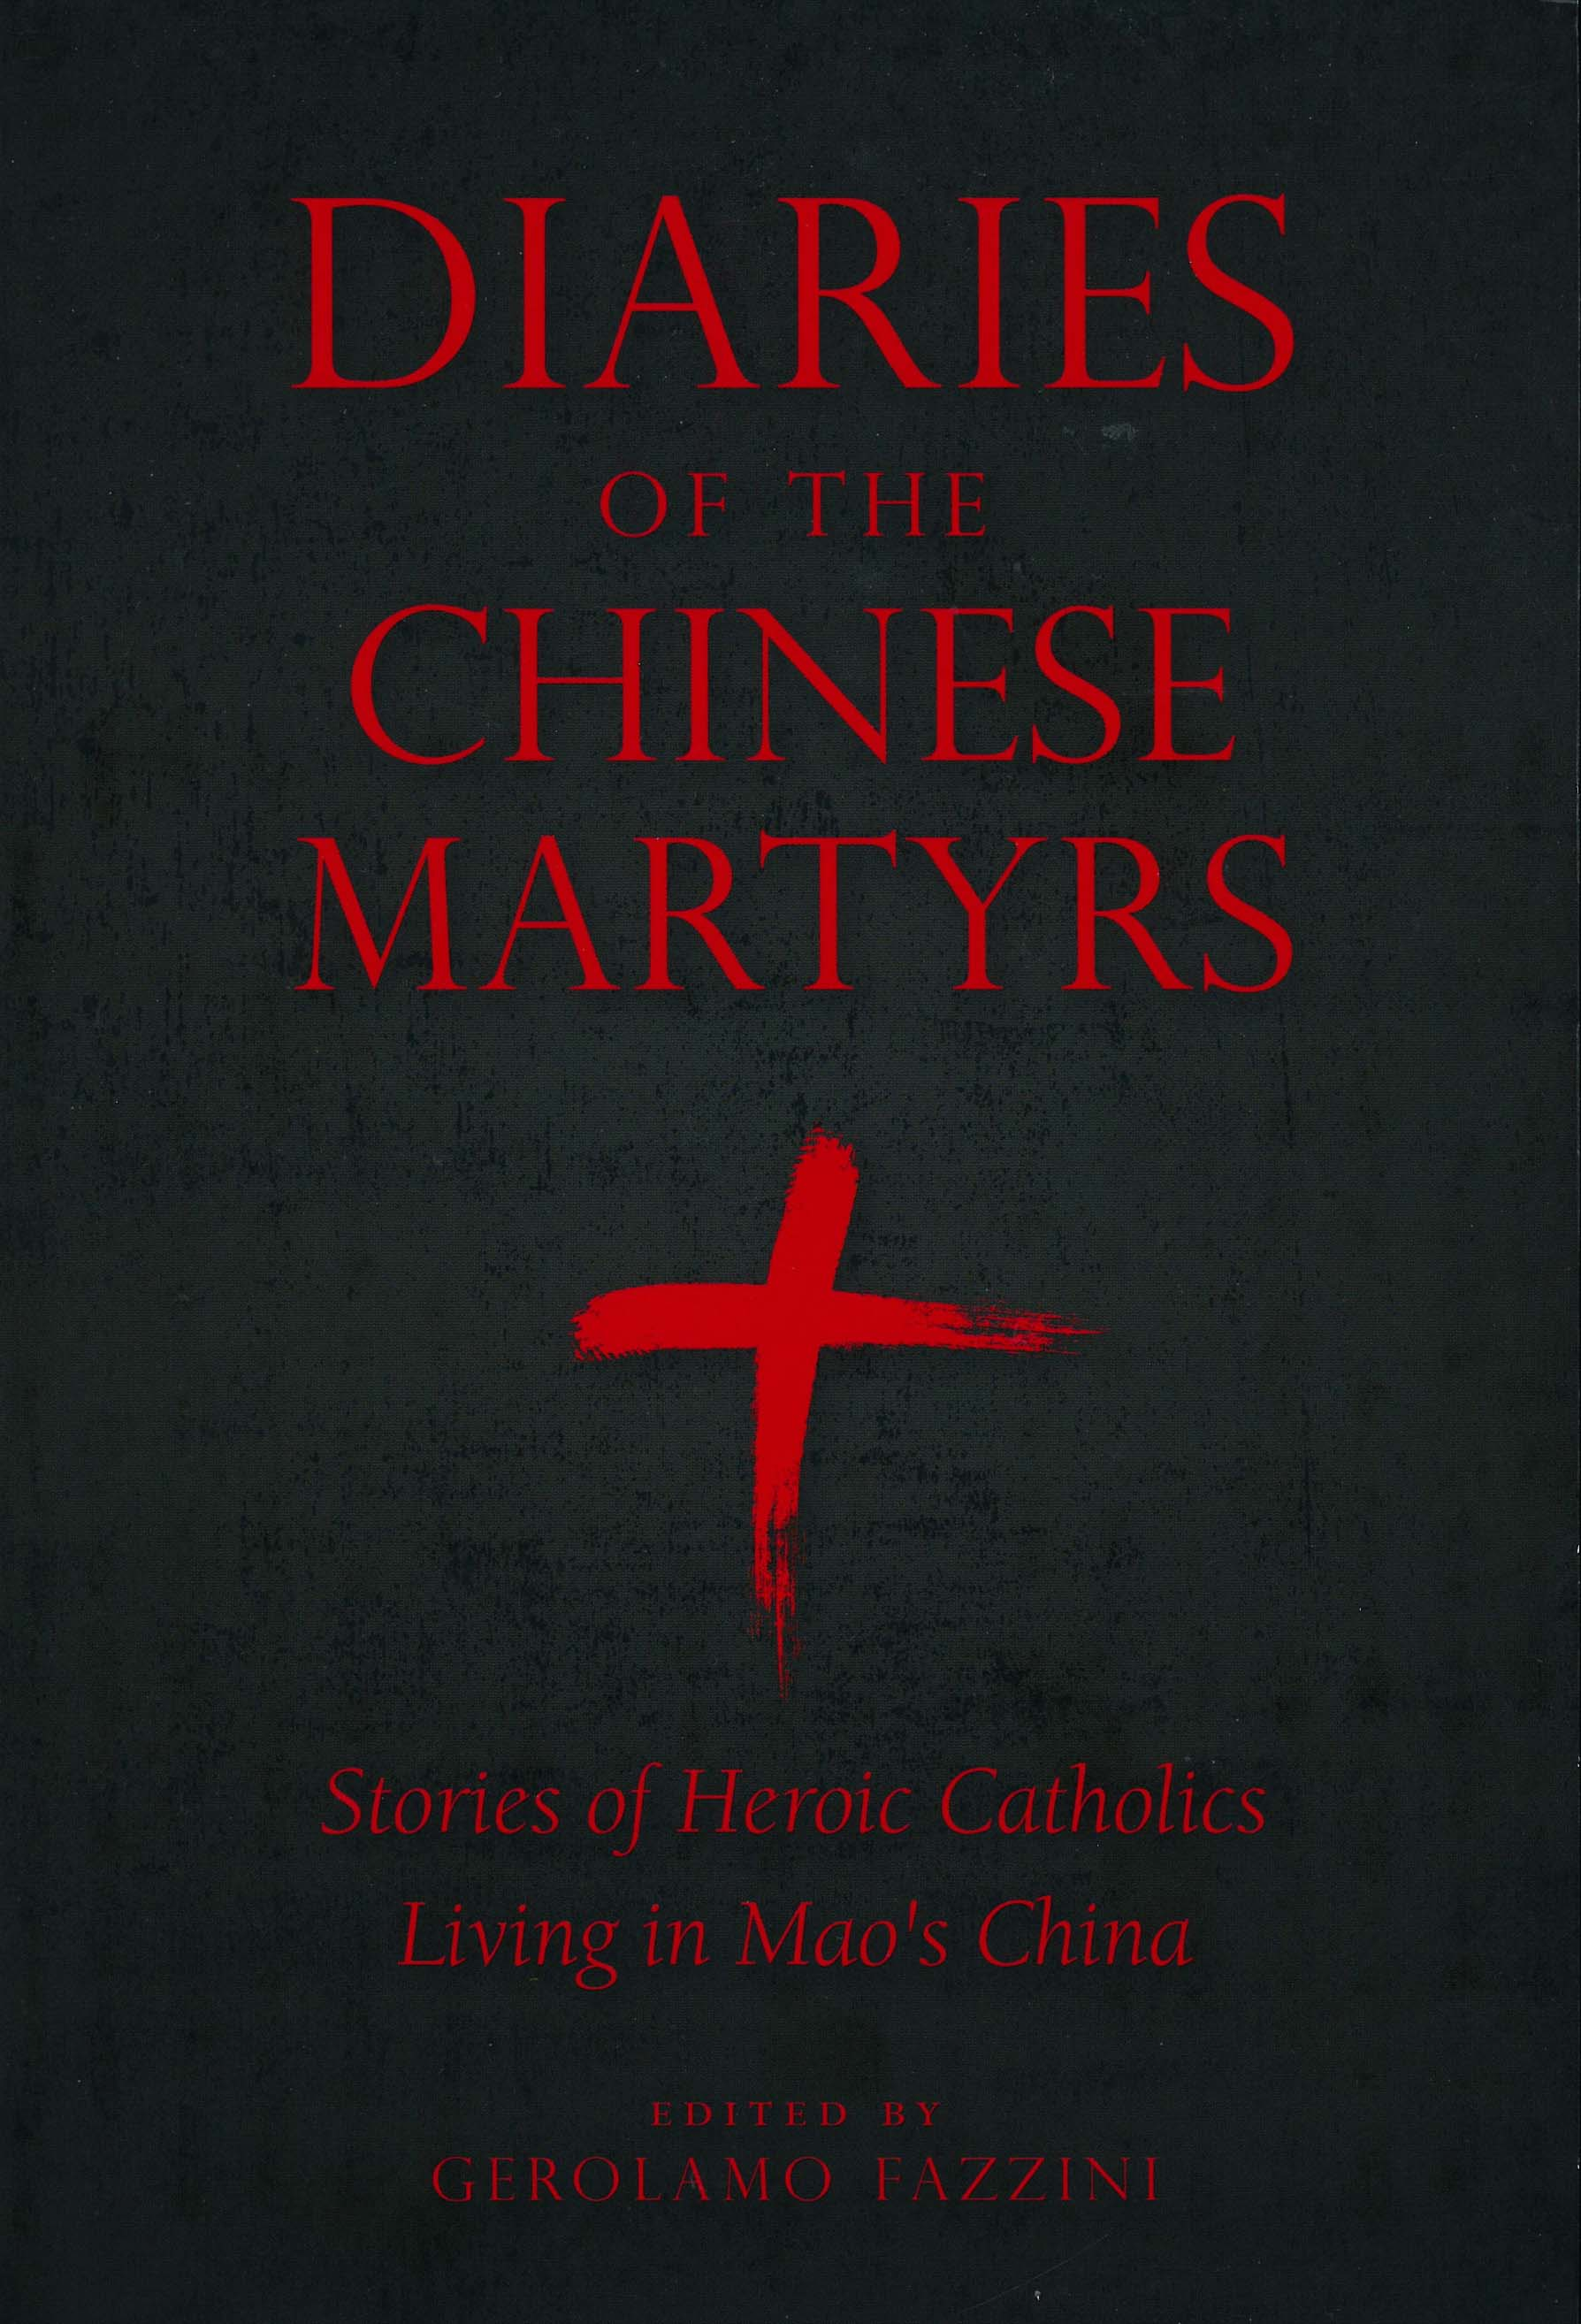 Diaries of the Chinese Martyrs with Gerolamo Fazzini 108-9781622823215